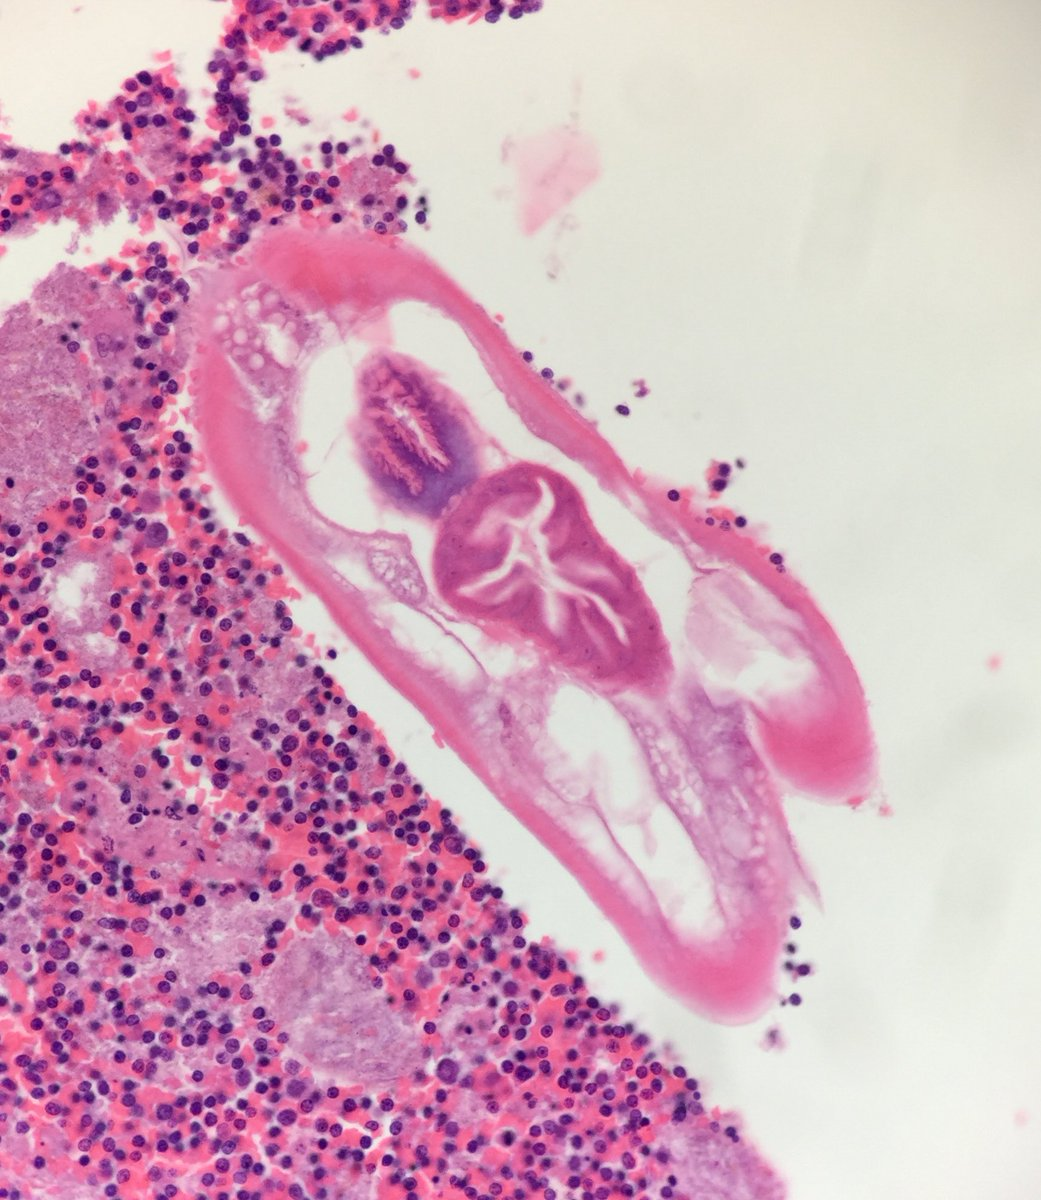 enterobius vermicularis histopathology rectal cancer in 20s